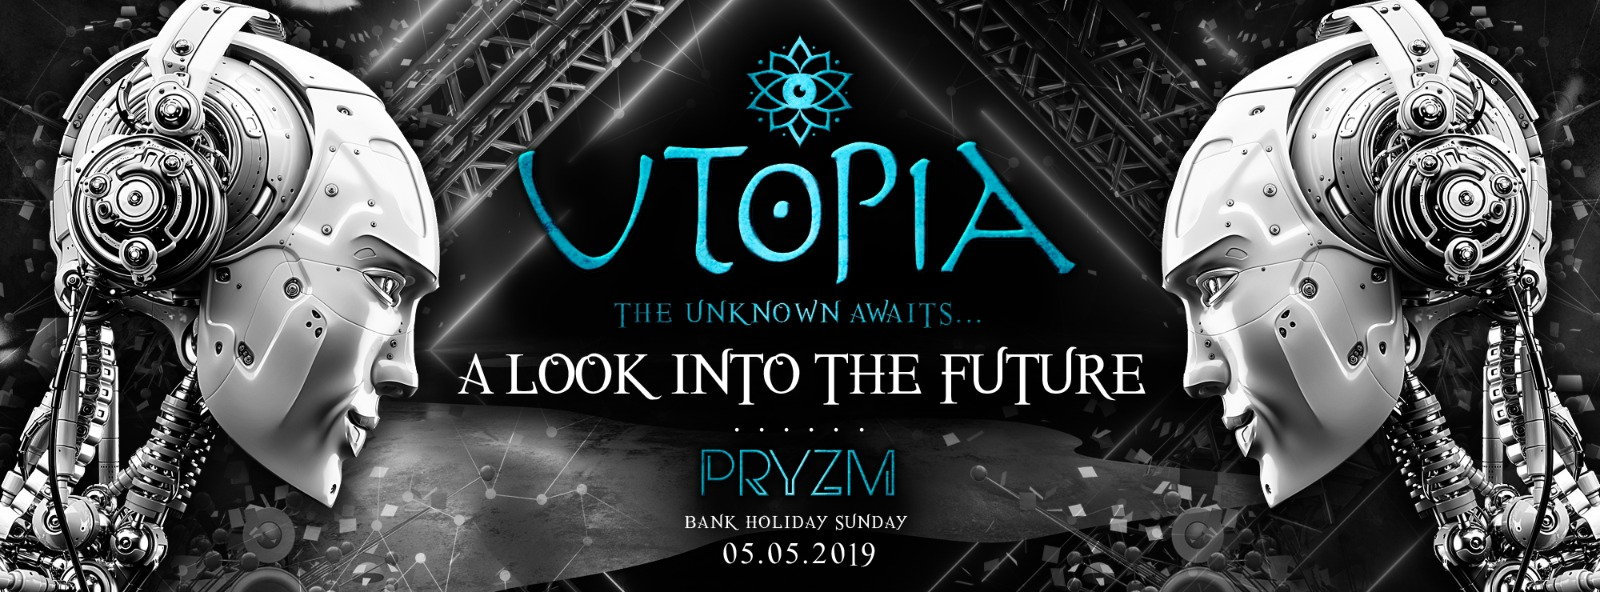 Utopia | A Look In To The Future